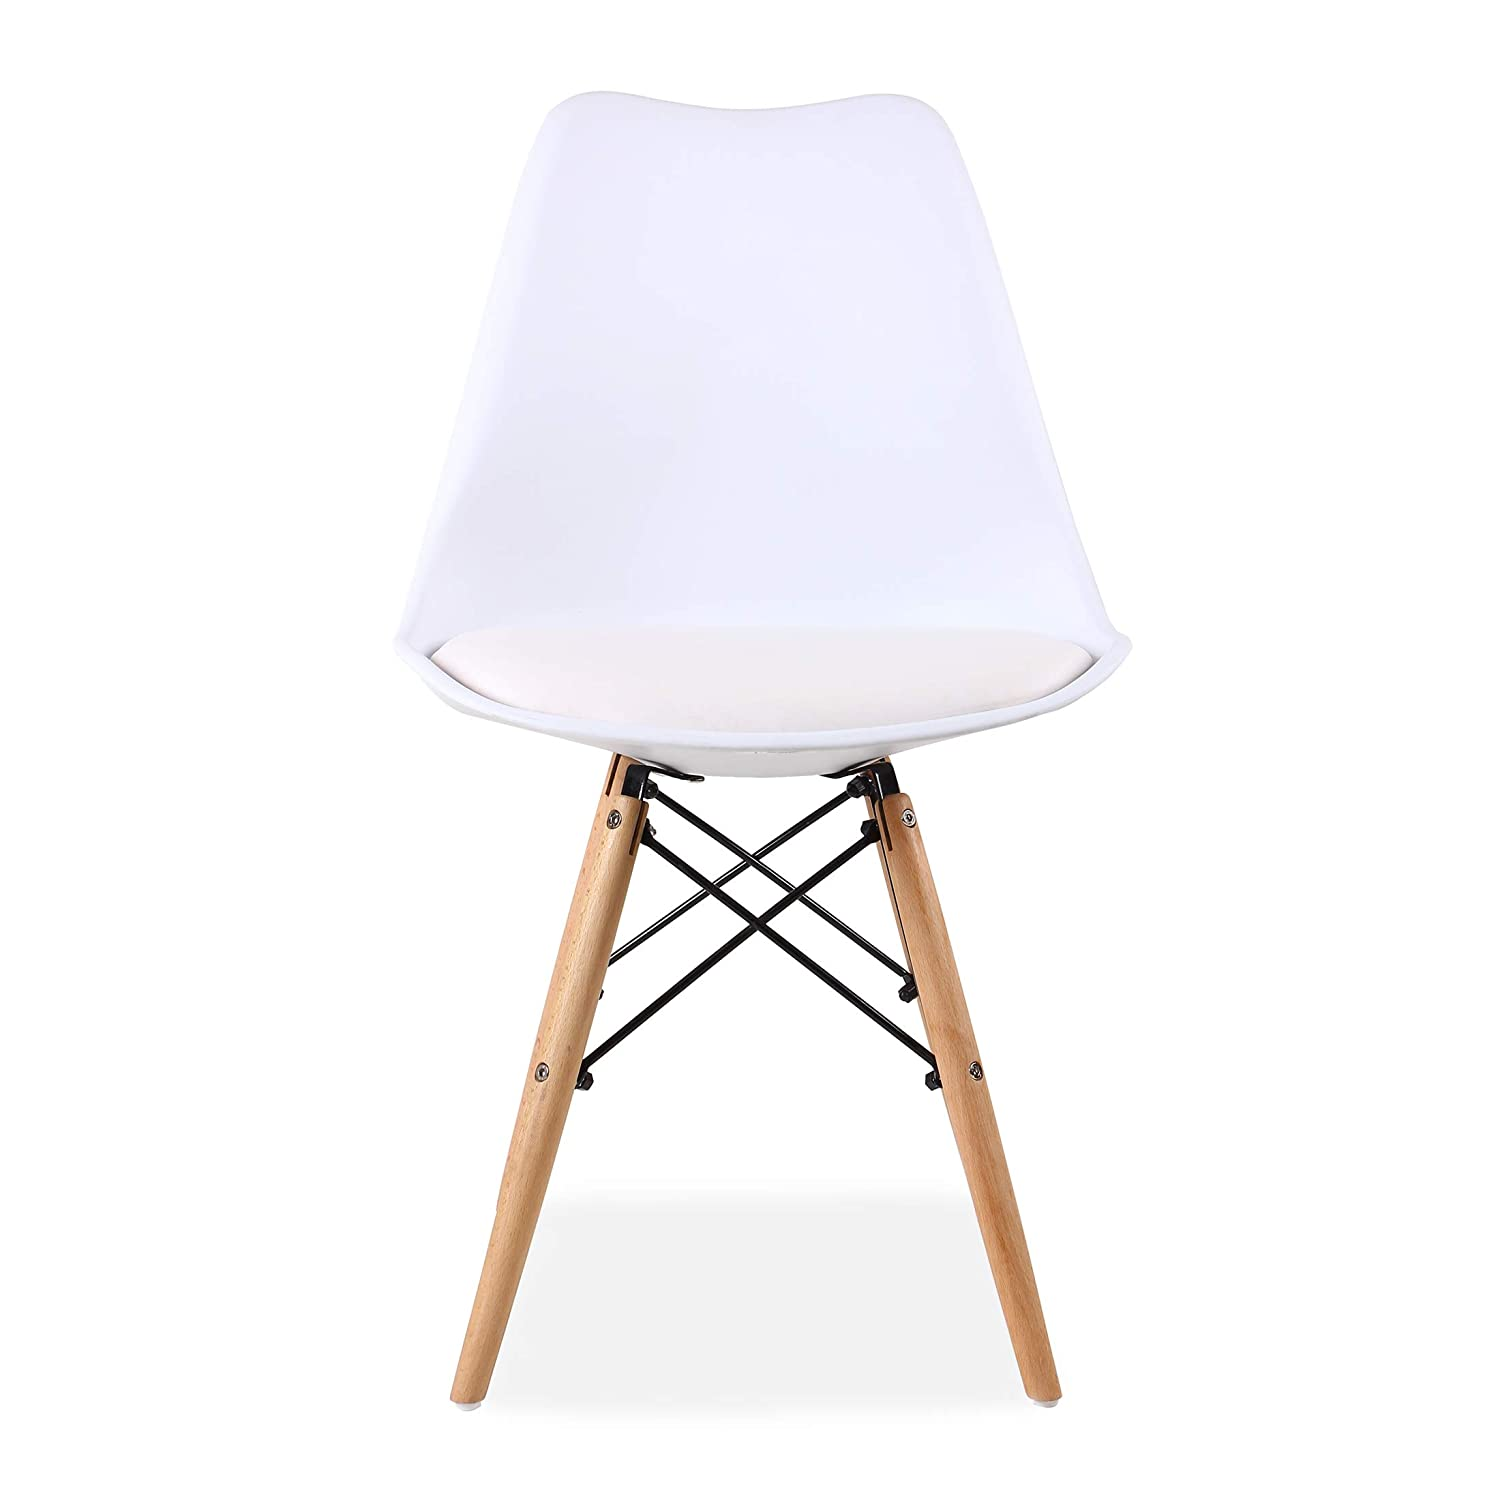 White All About Chairs Set of 4 Eiffel Style Kitchen Dining Chair Plastic Soft PU Leather Padded Cushion Solid Wooden Legs